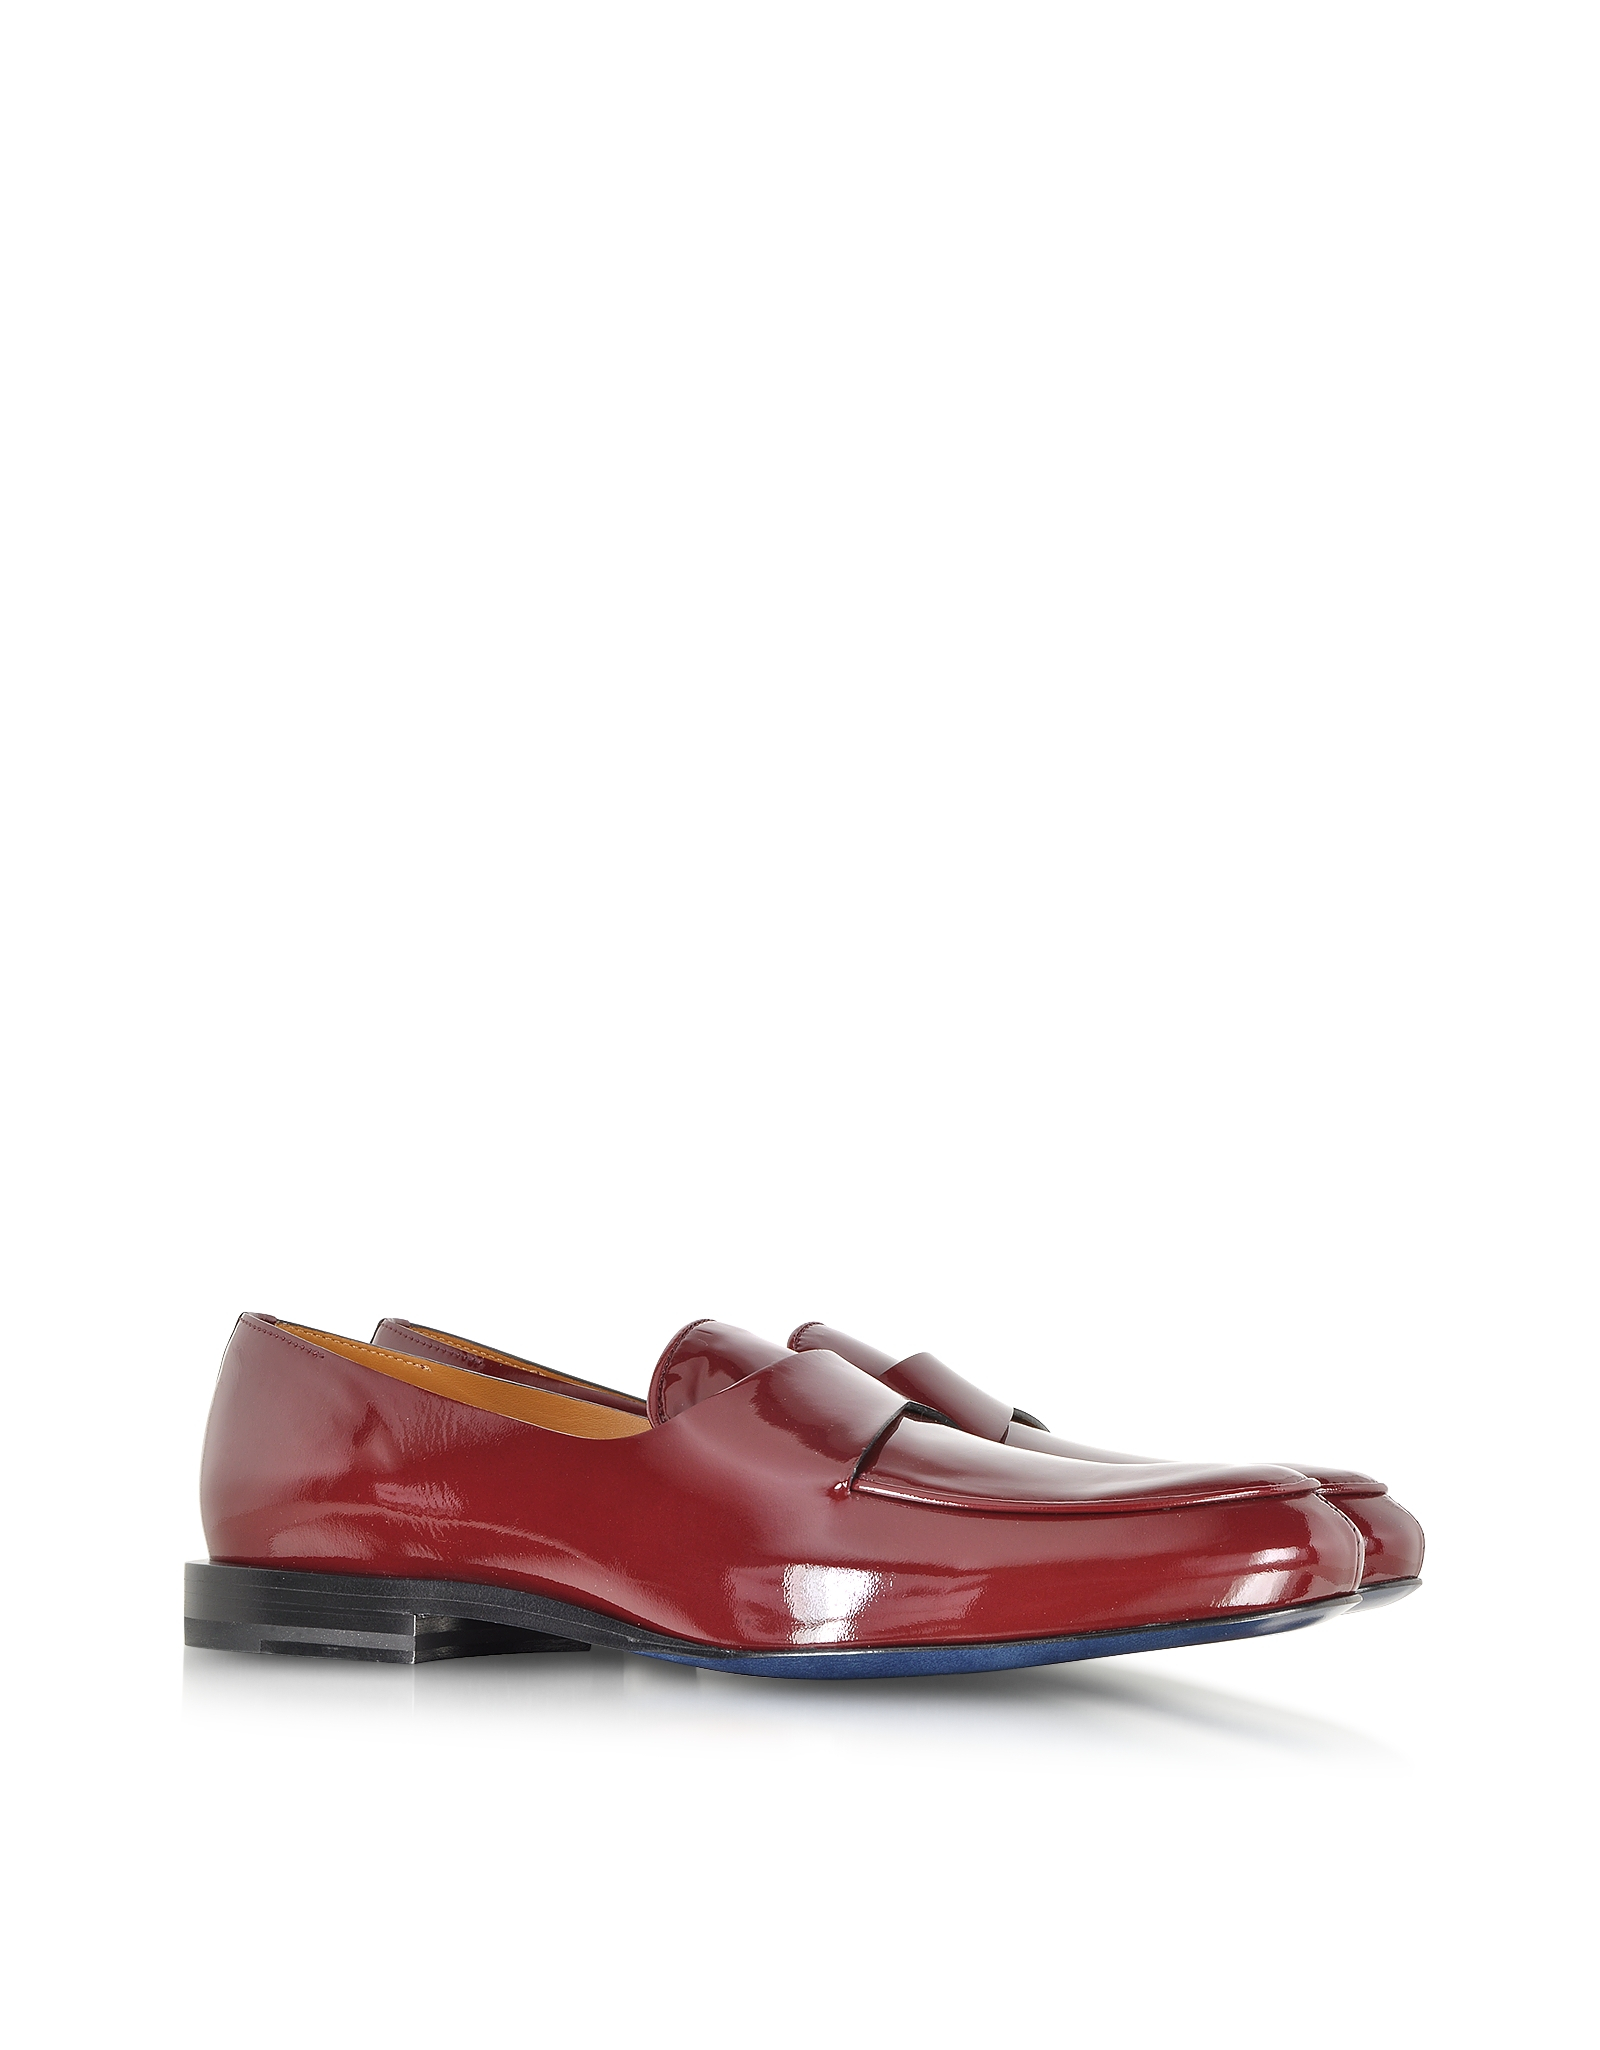 2a141b74e29 Lyst - Jil Sander Burgundy Patent Leather Loafer in Purple for Men